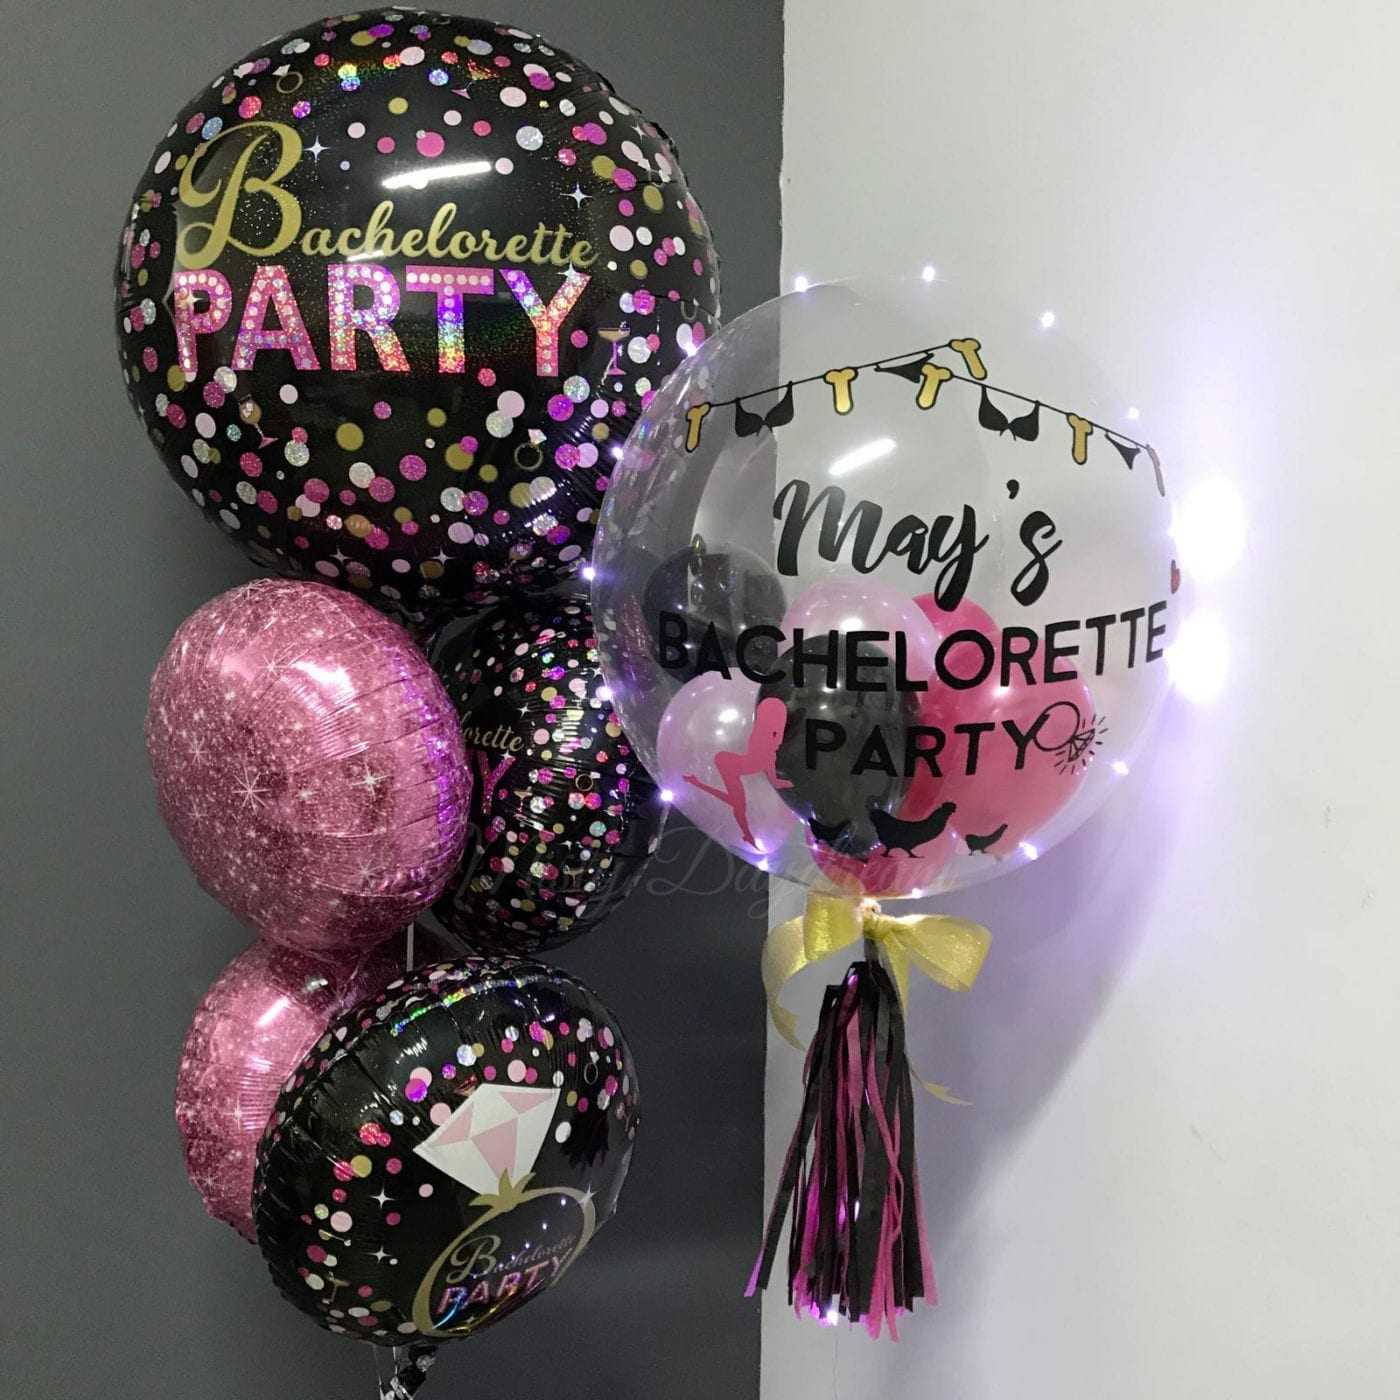 Bachelorette Party 24 Inch Personalized Bubble Balloon